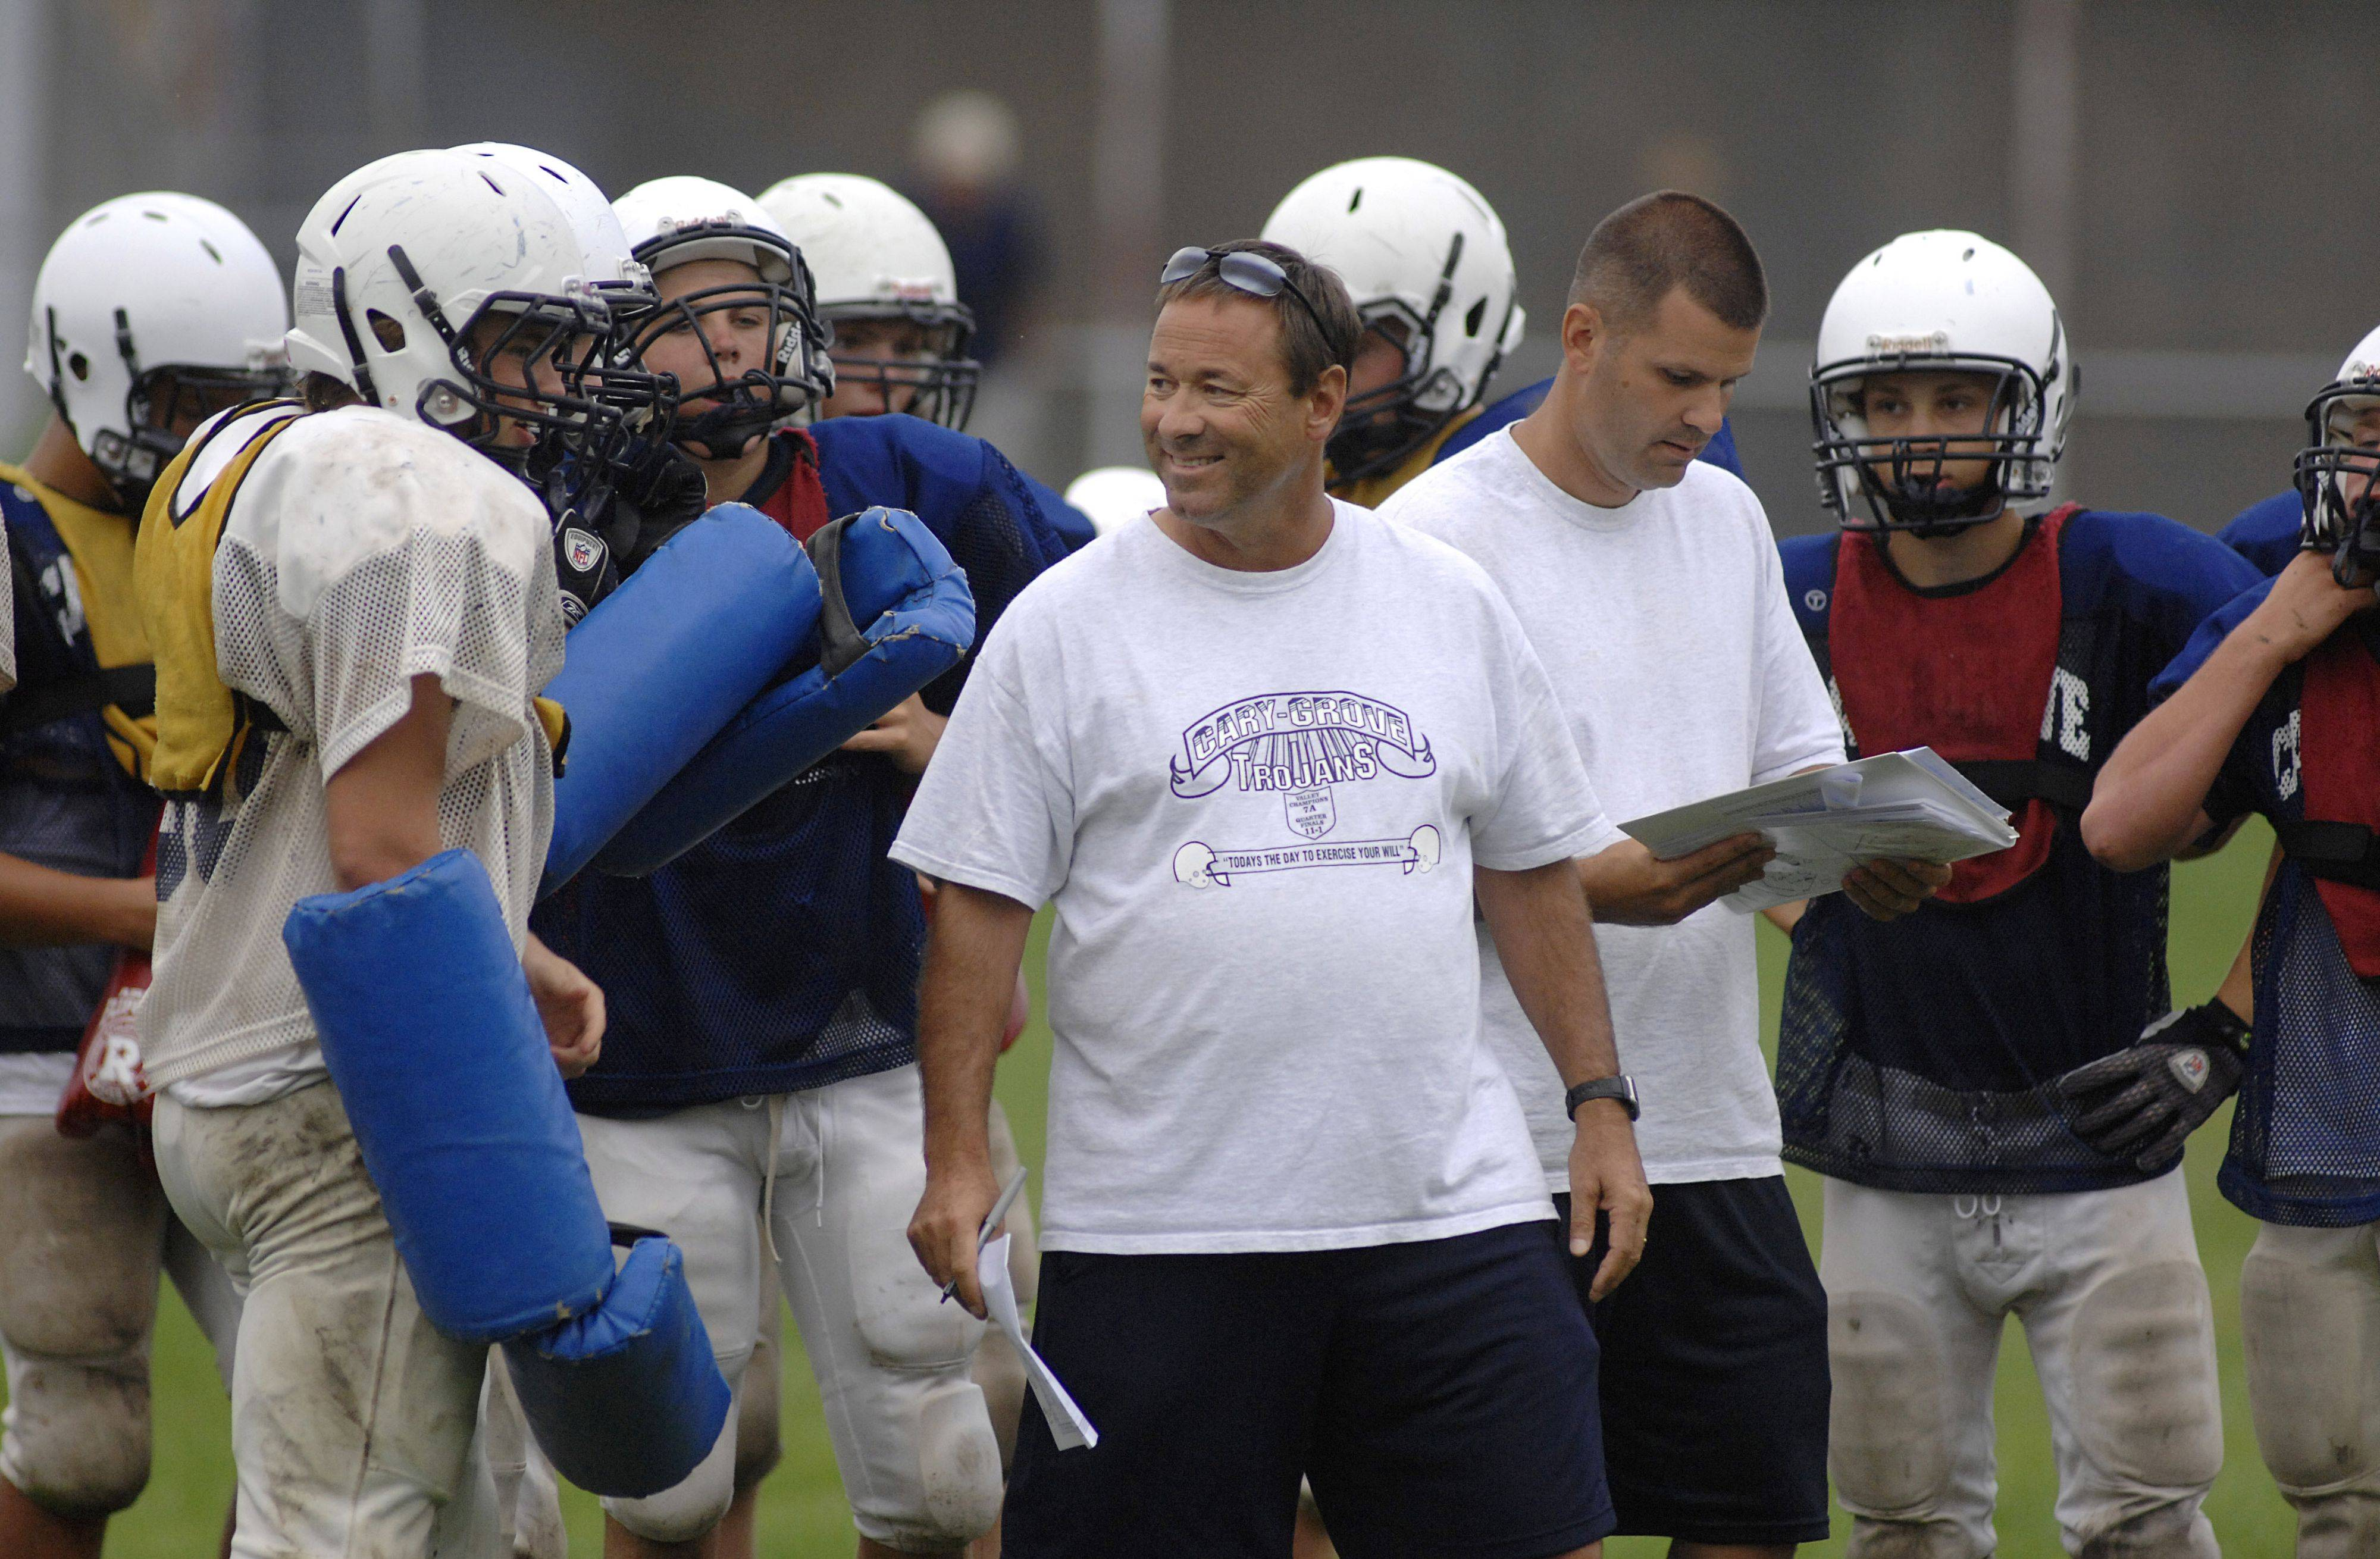 Cary-Grove football coach and athletic director Bruce Kay announced his retirement after 22 years and a state championship.